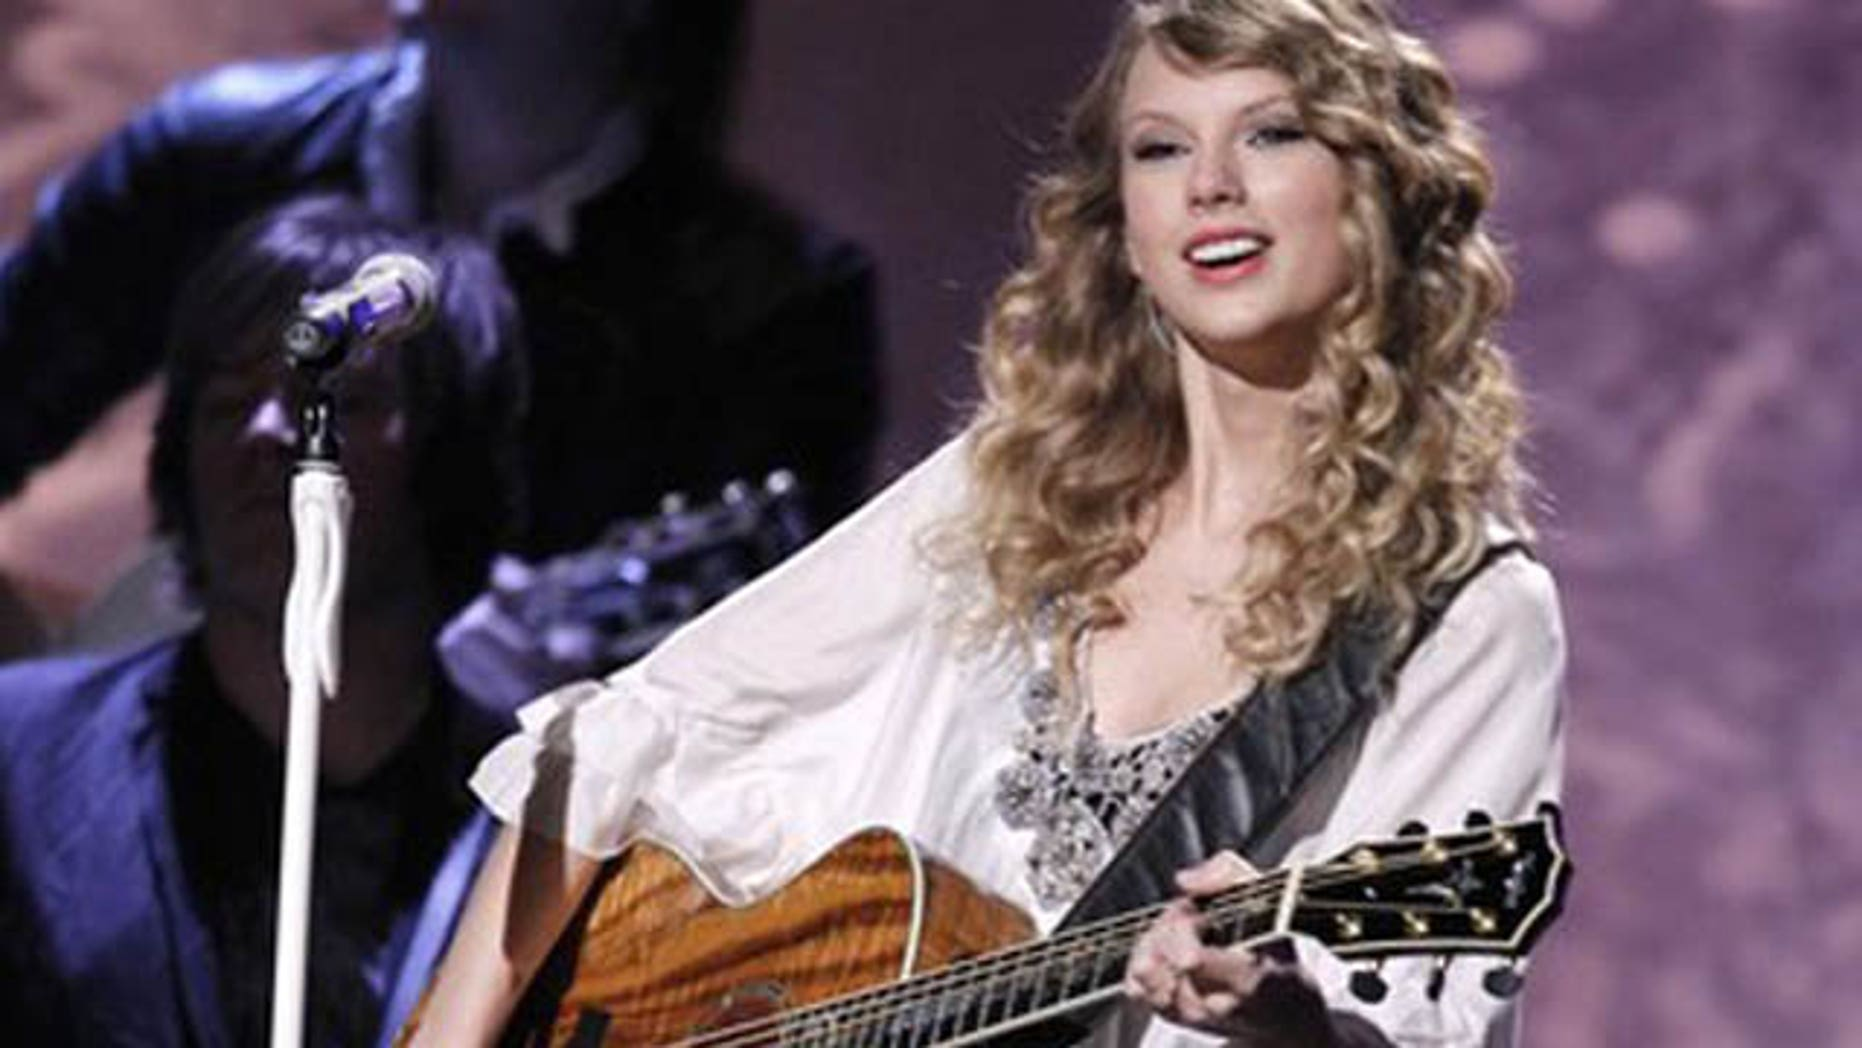 Jan. 31: Taylor Swift performs at the 52nd annual Grammy Awards in Los Angeles.